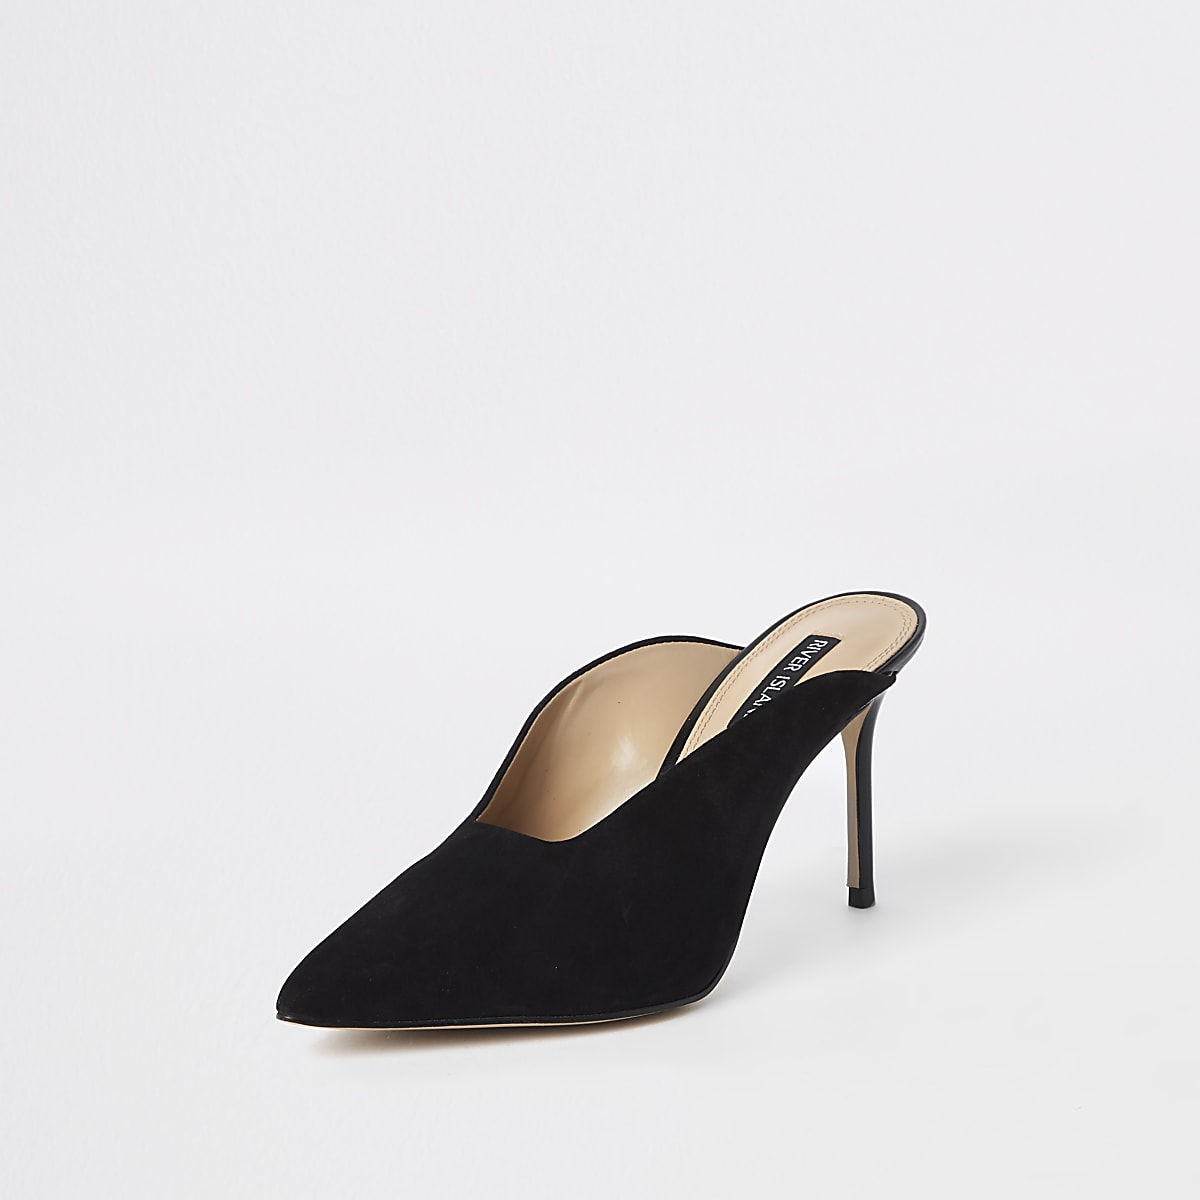 c63764a19b Black leather pointed toe slim heel mules - Shoes - Shoes & Boots ...